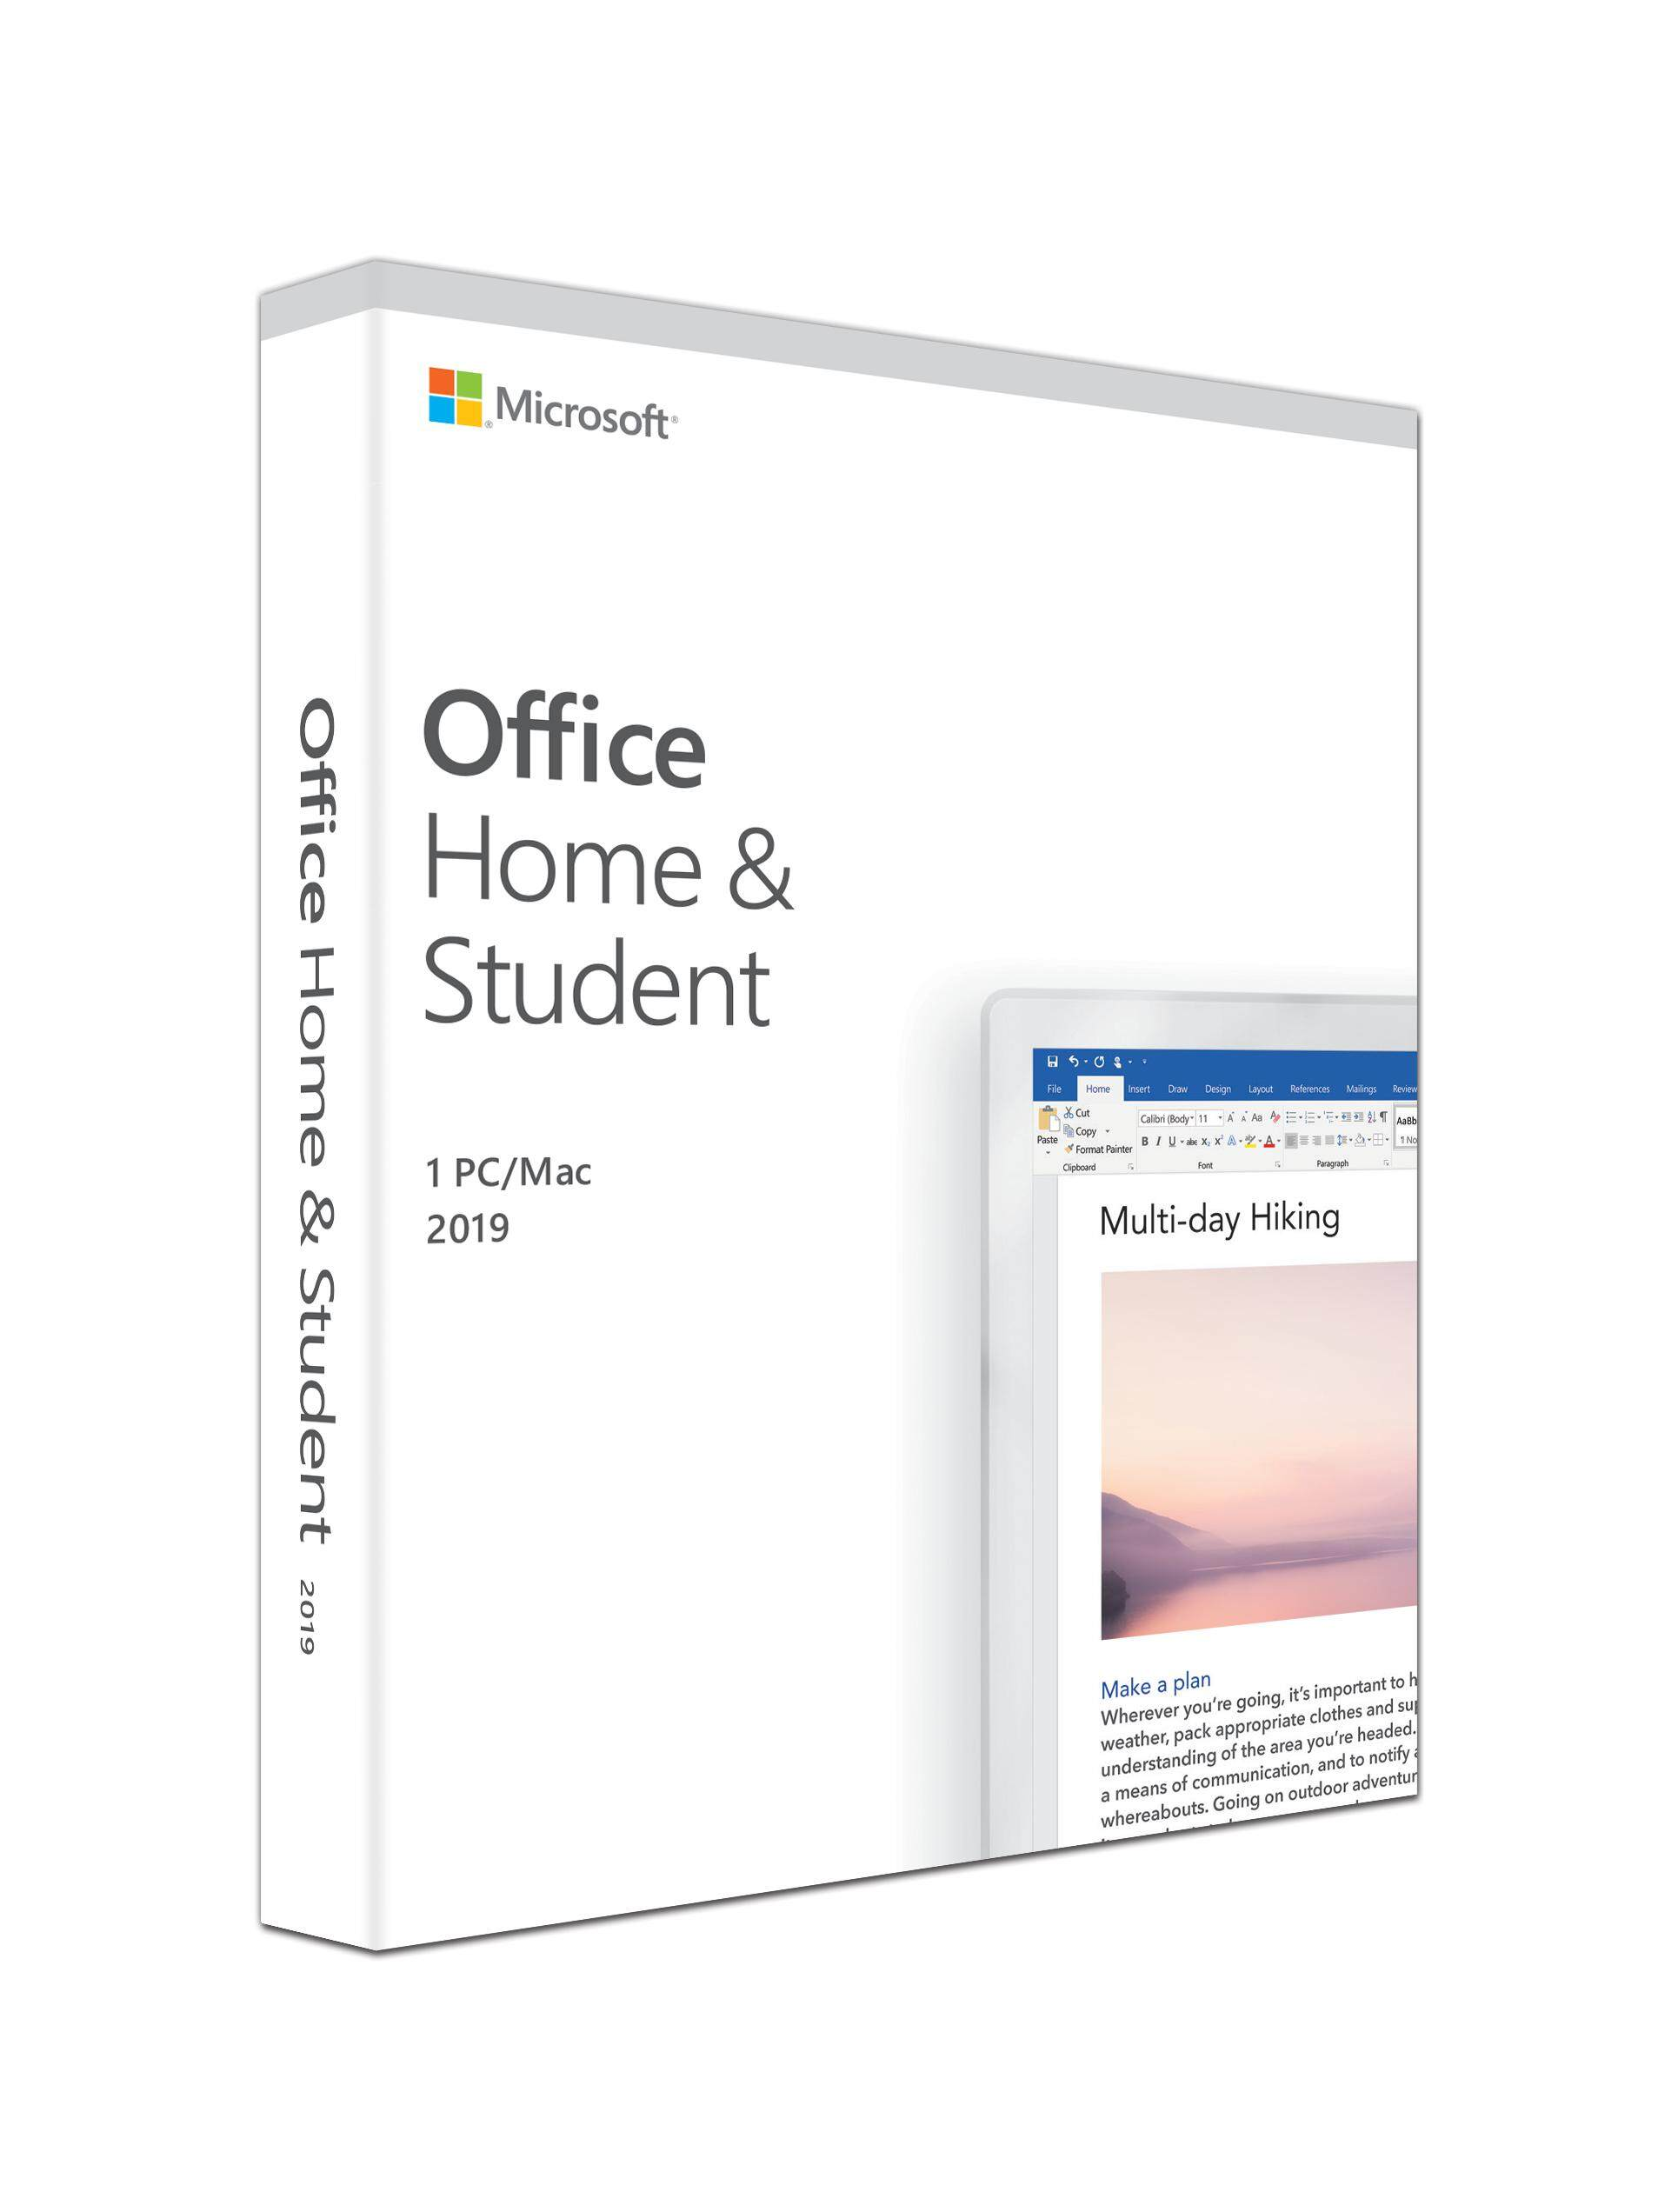 Microsoft Office Home & Student 2019 for 1 PC/Mac